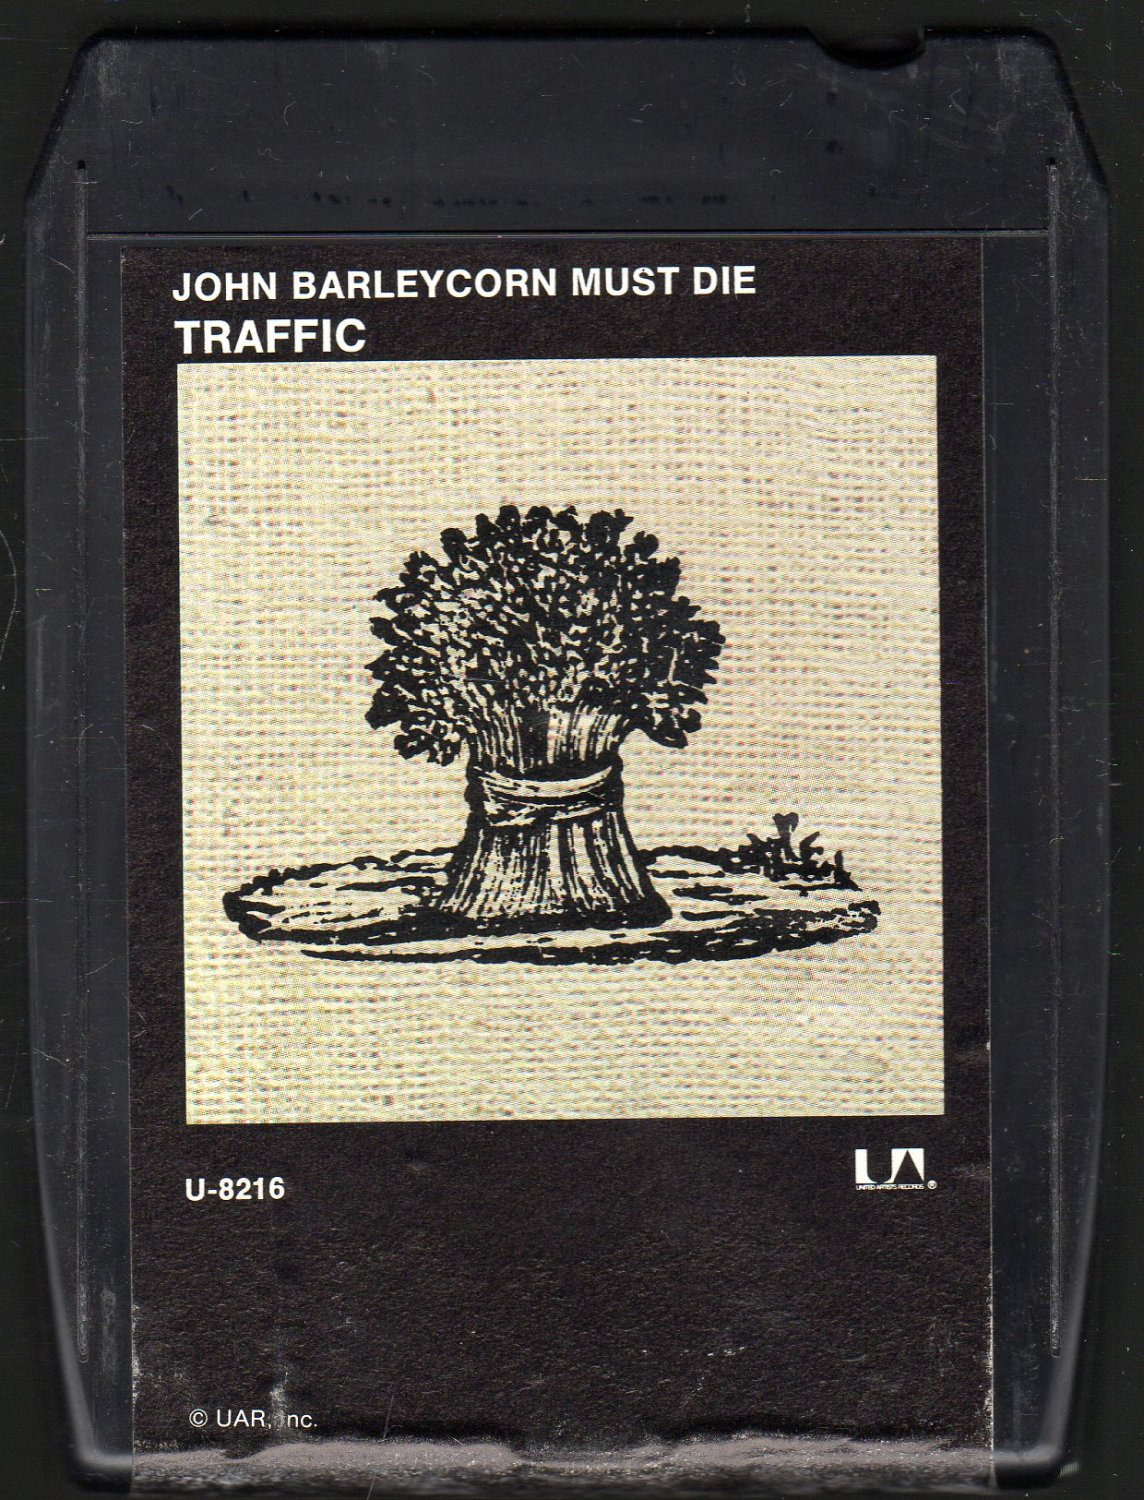 Traffic - John Barleycorn Must Die UA 8-track tape